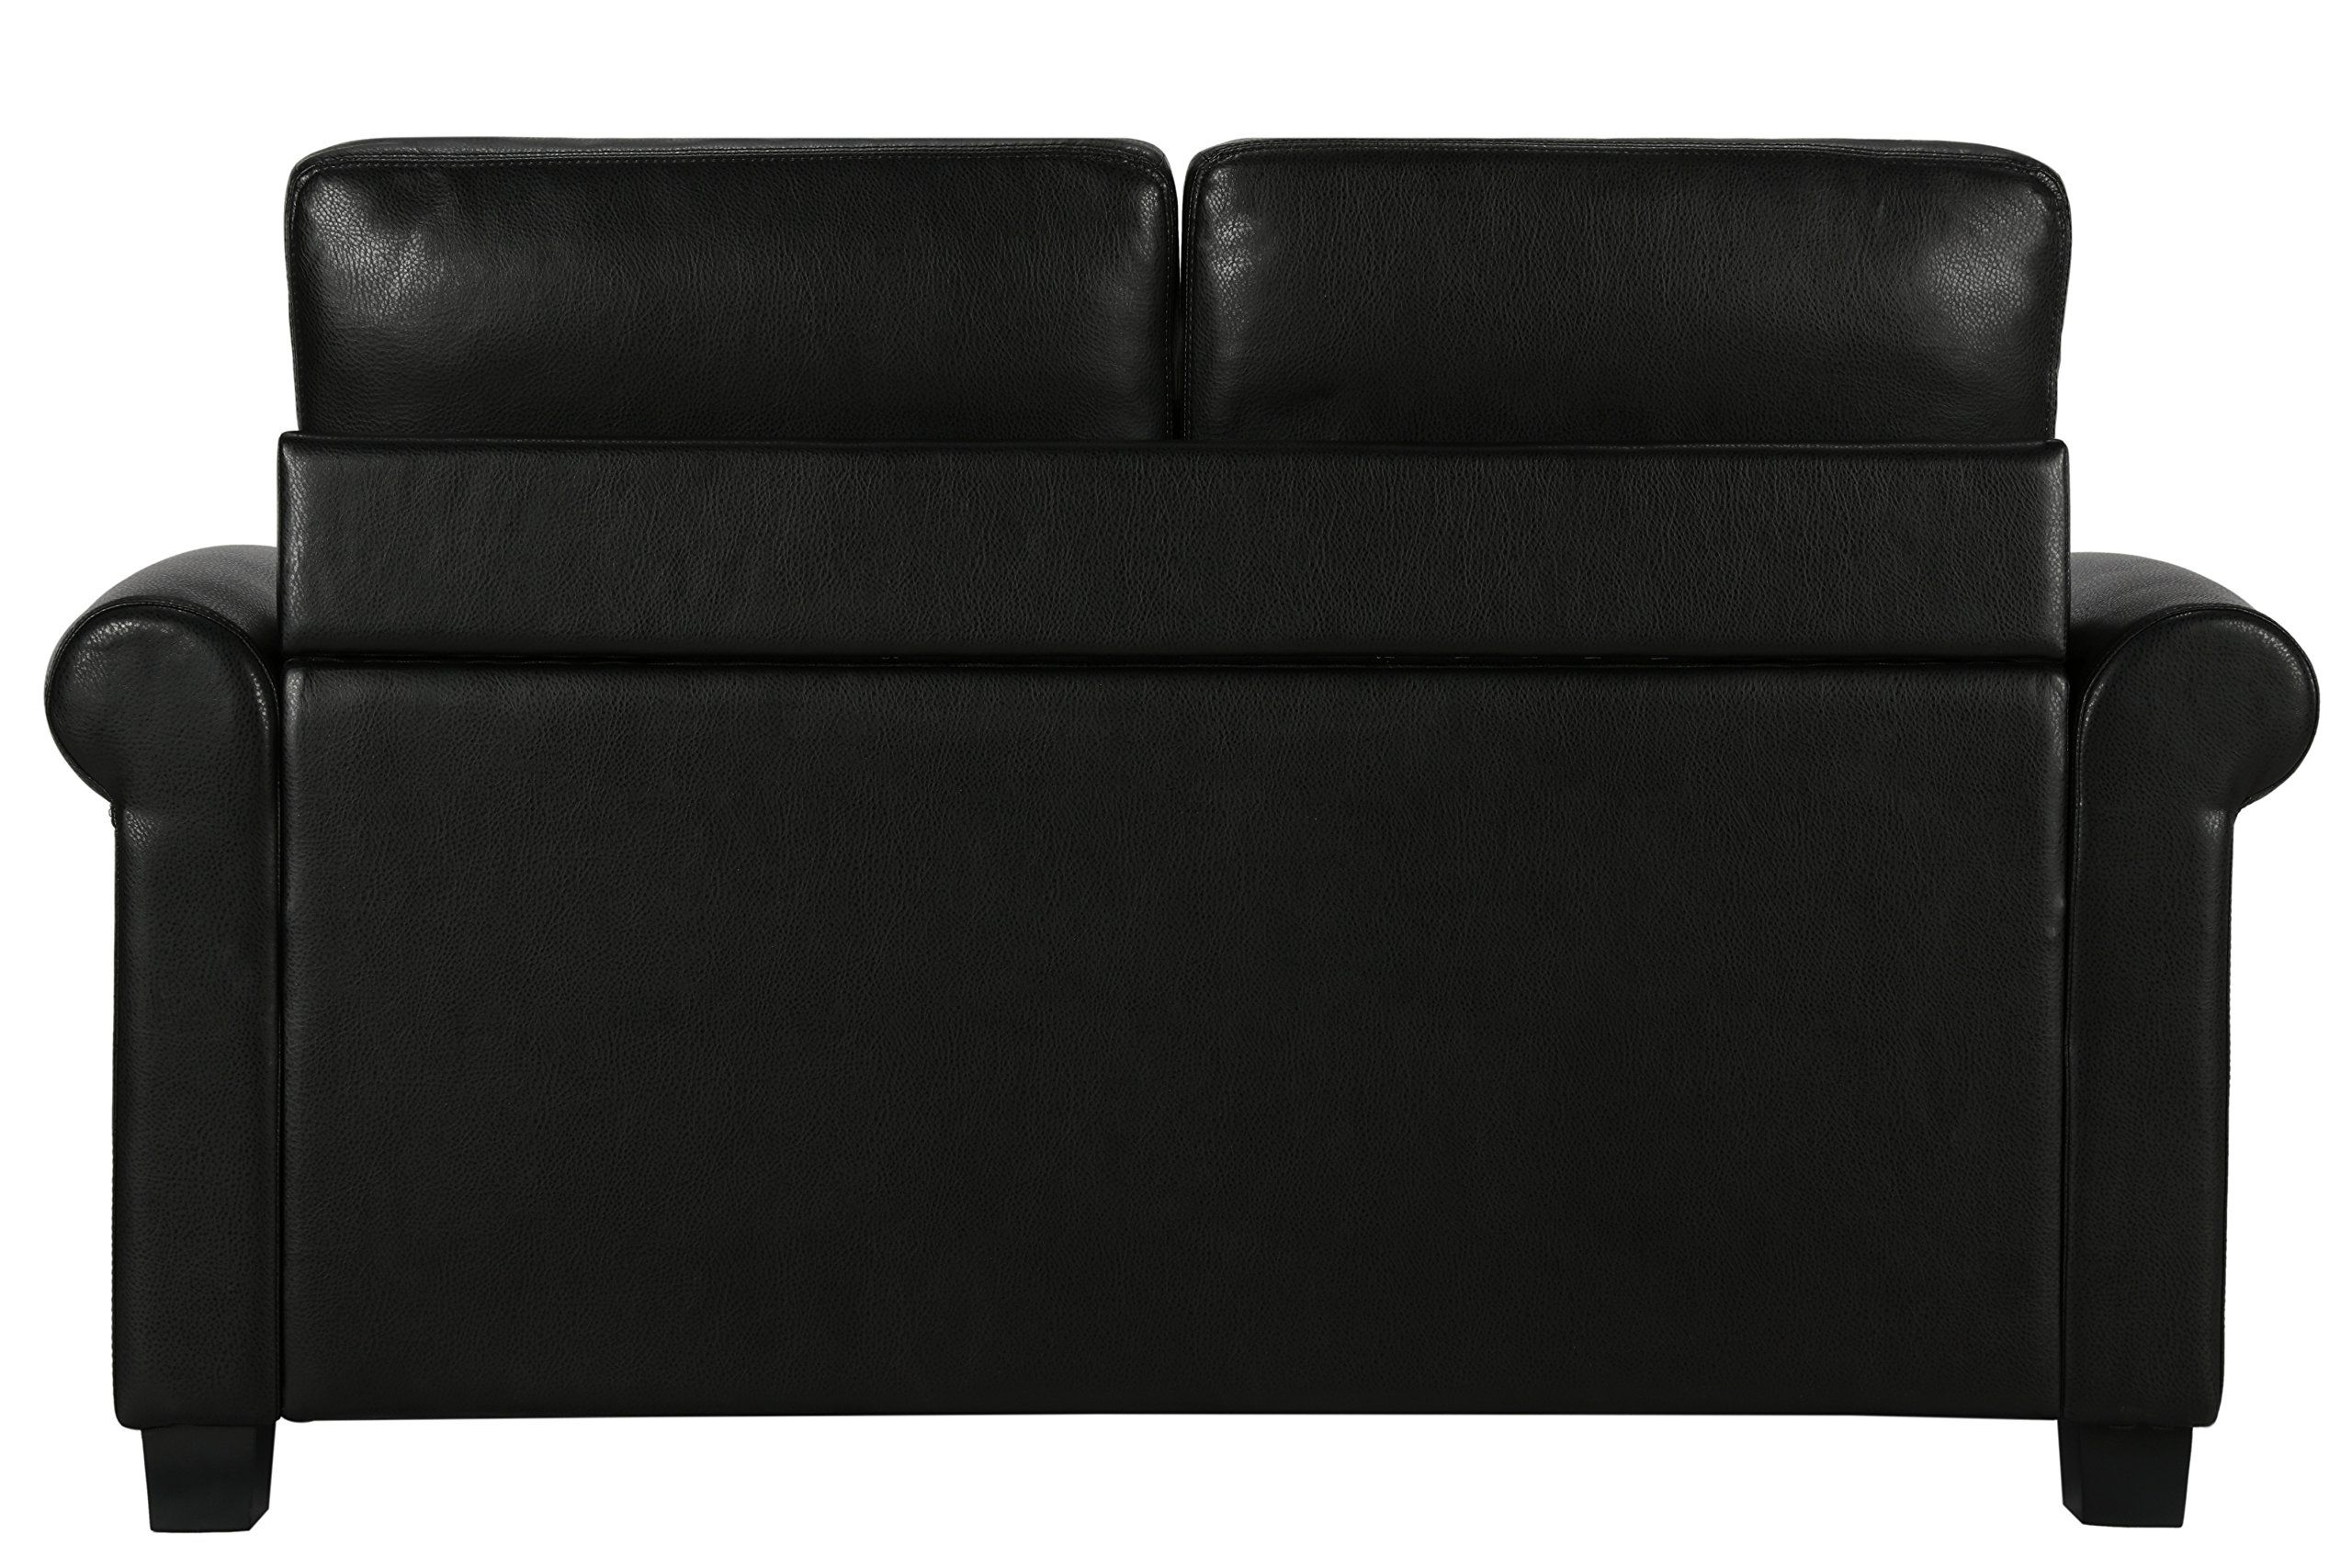 Superb Dhp Premium Sofa Bed Pull Out Couch Sleeper Sofa With Pull Creativecarmelina Interior Chair Design Creativecarmelinacom